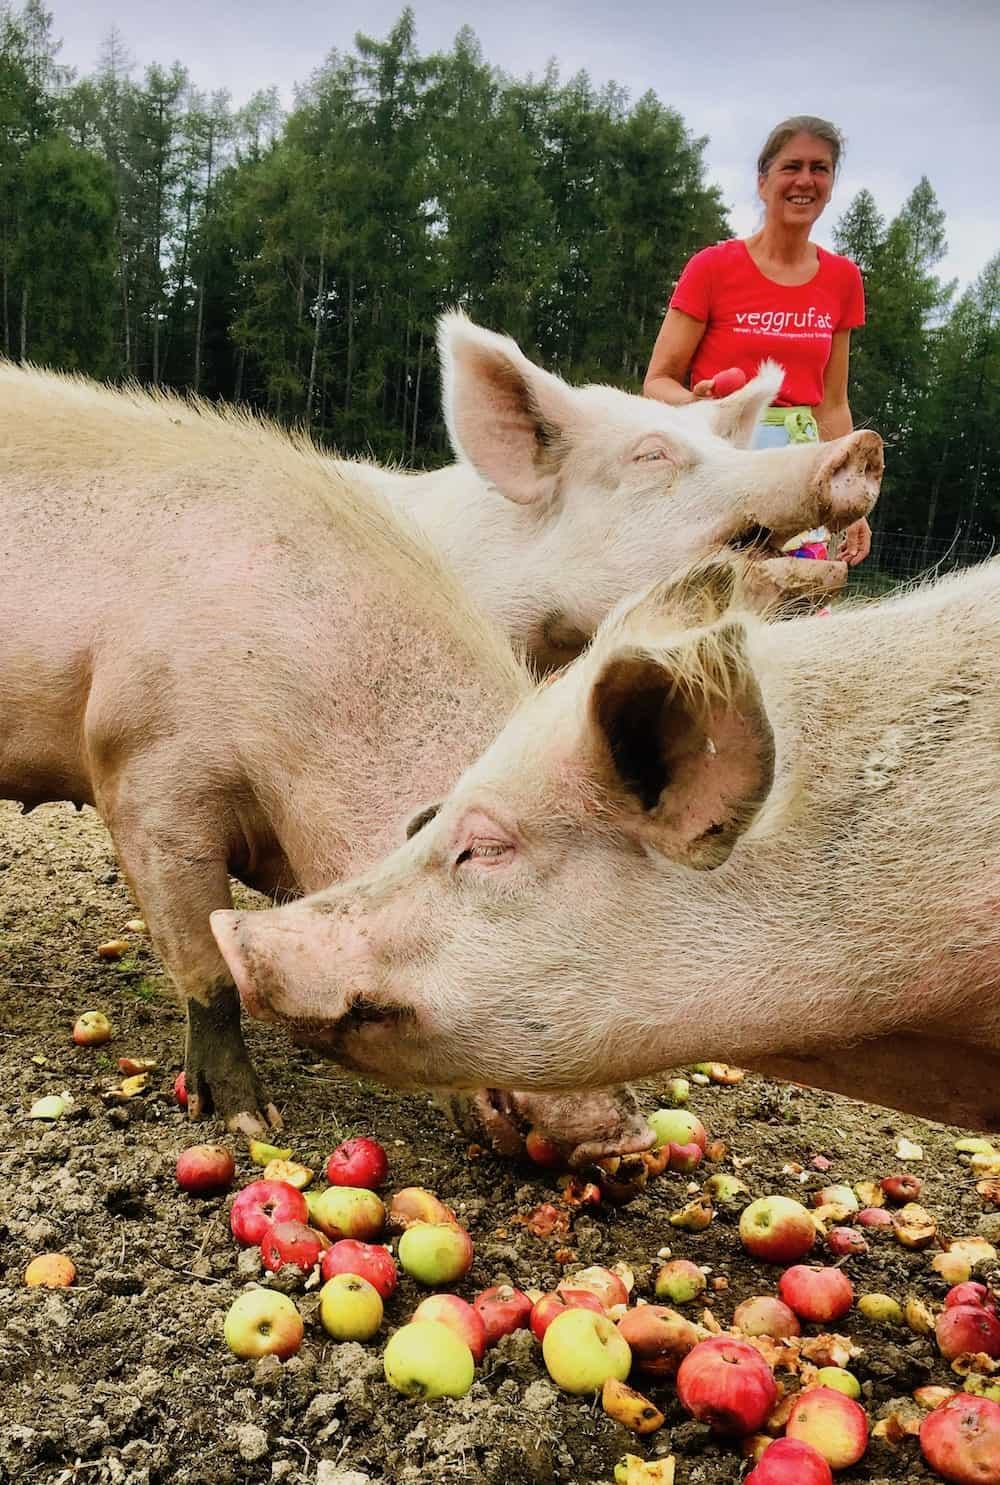 Pigs at a sanctuary eating apples